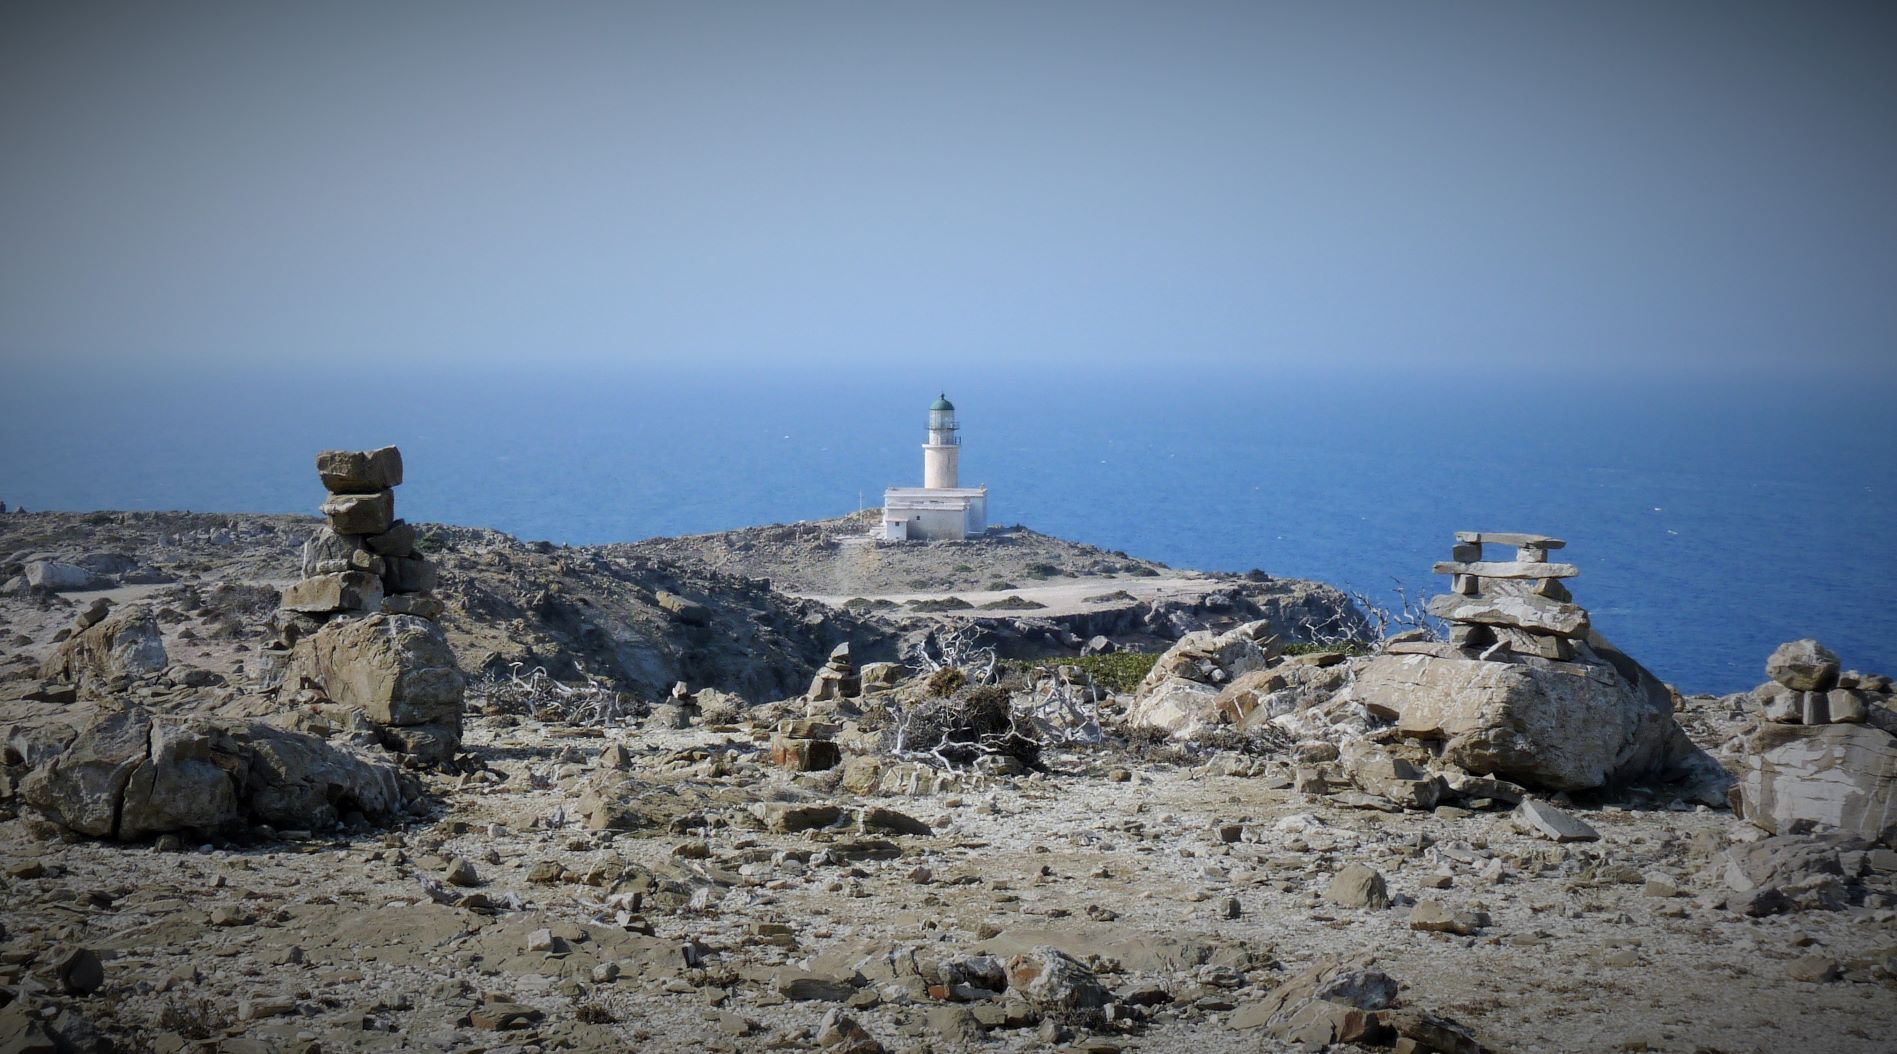 Phare de Prasonisi